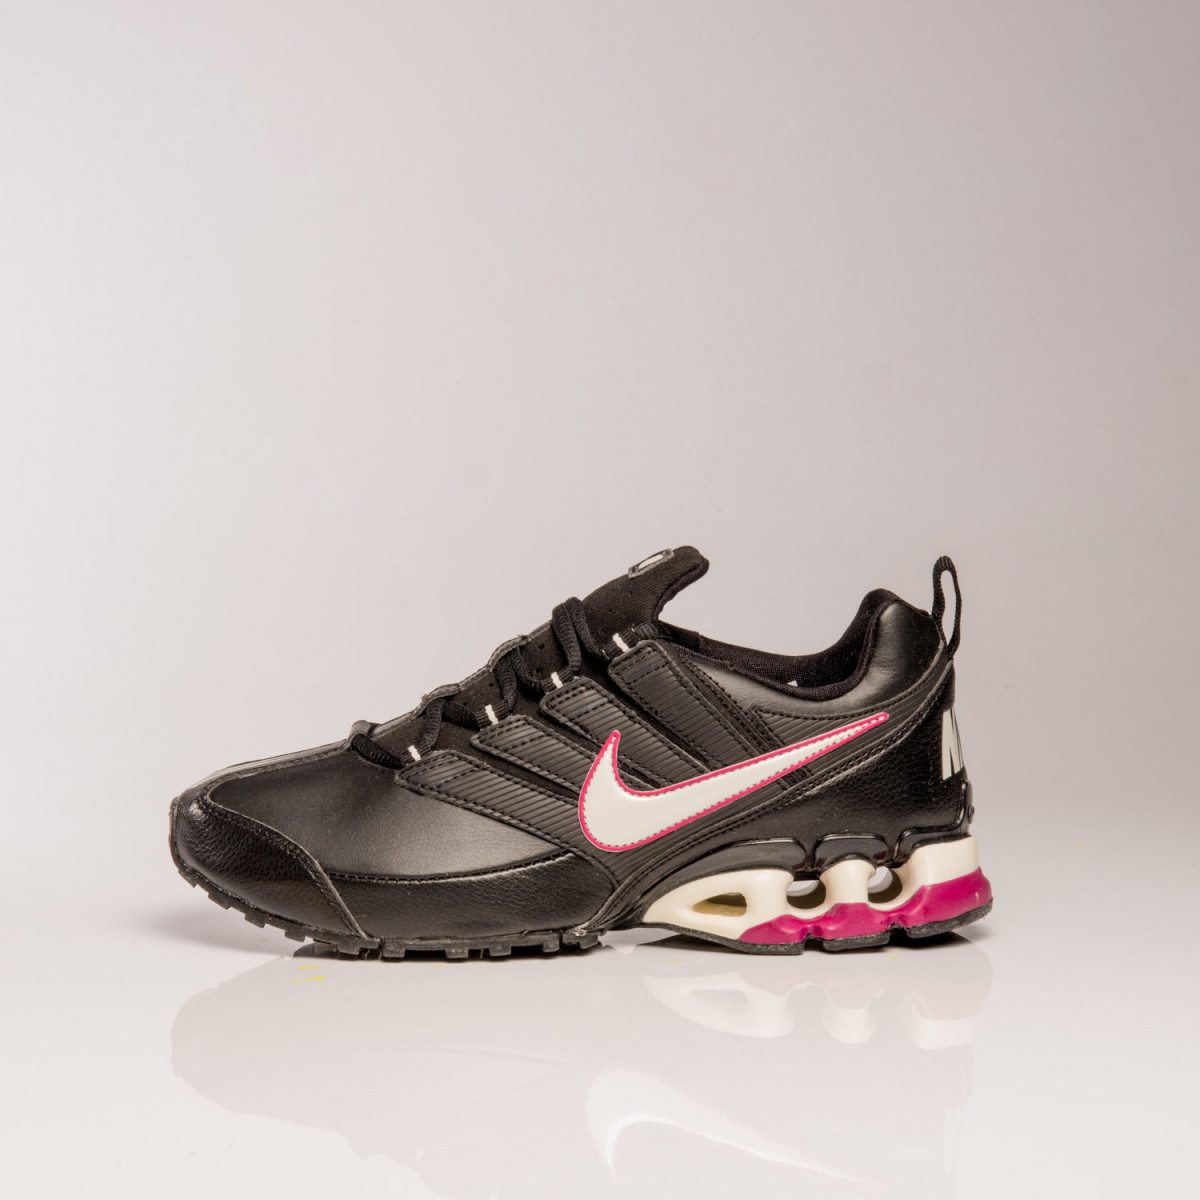 ZAPATILLAS NIKE IMPAX CONTAIN